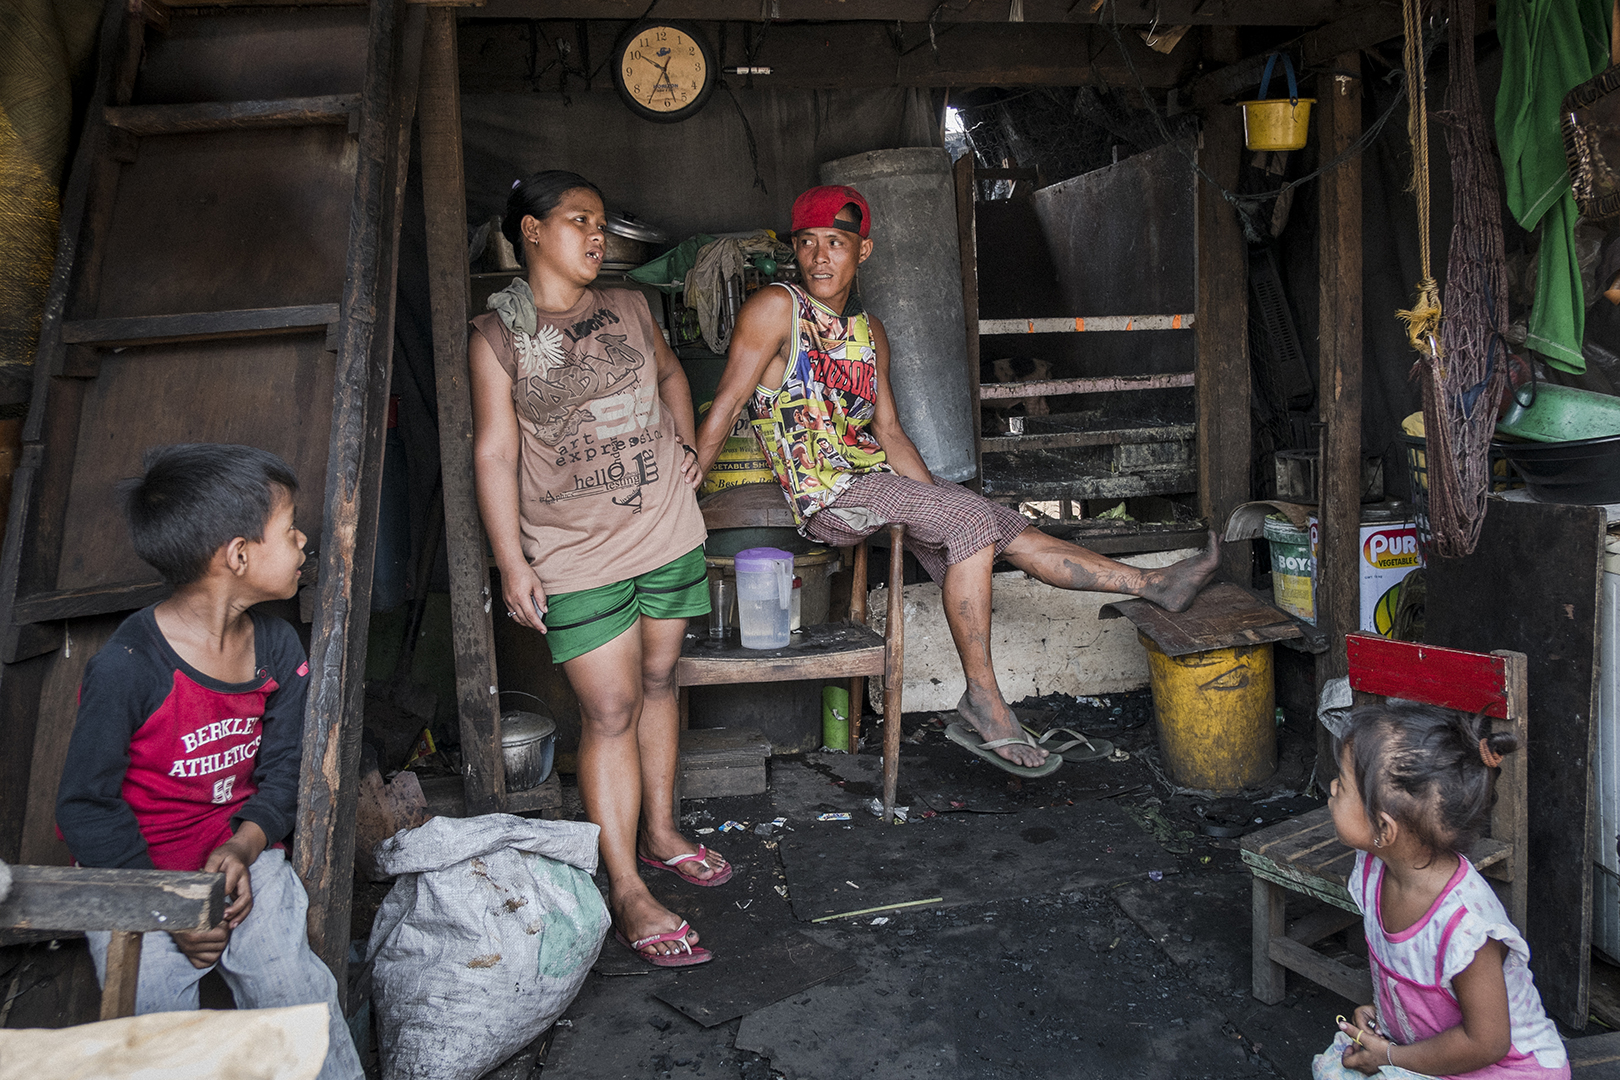 Ricky (30) and Narisa (28) live just beside charcoal open pits. They have two kids and this year they have applied for 4P's Philippine governmental program aiming to eradicate extreme poverty by investing in health and education. They never got a reply. The corruption in local governments in the Philippines is very common and some places for the programmes are already reserved for government member's connections even though they are not the most vulnerable. Malabon, Philippines, 2017